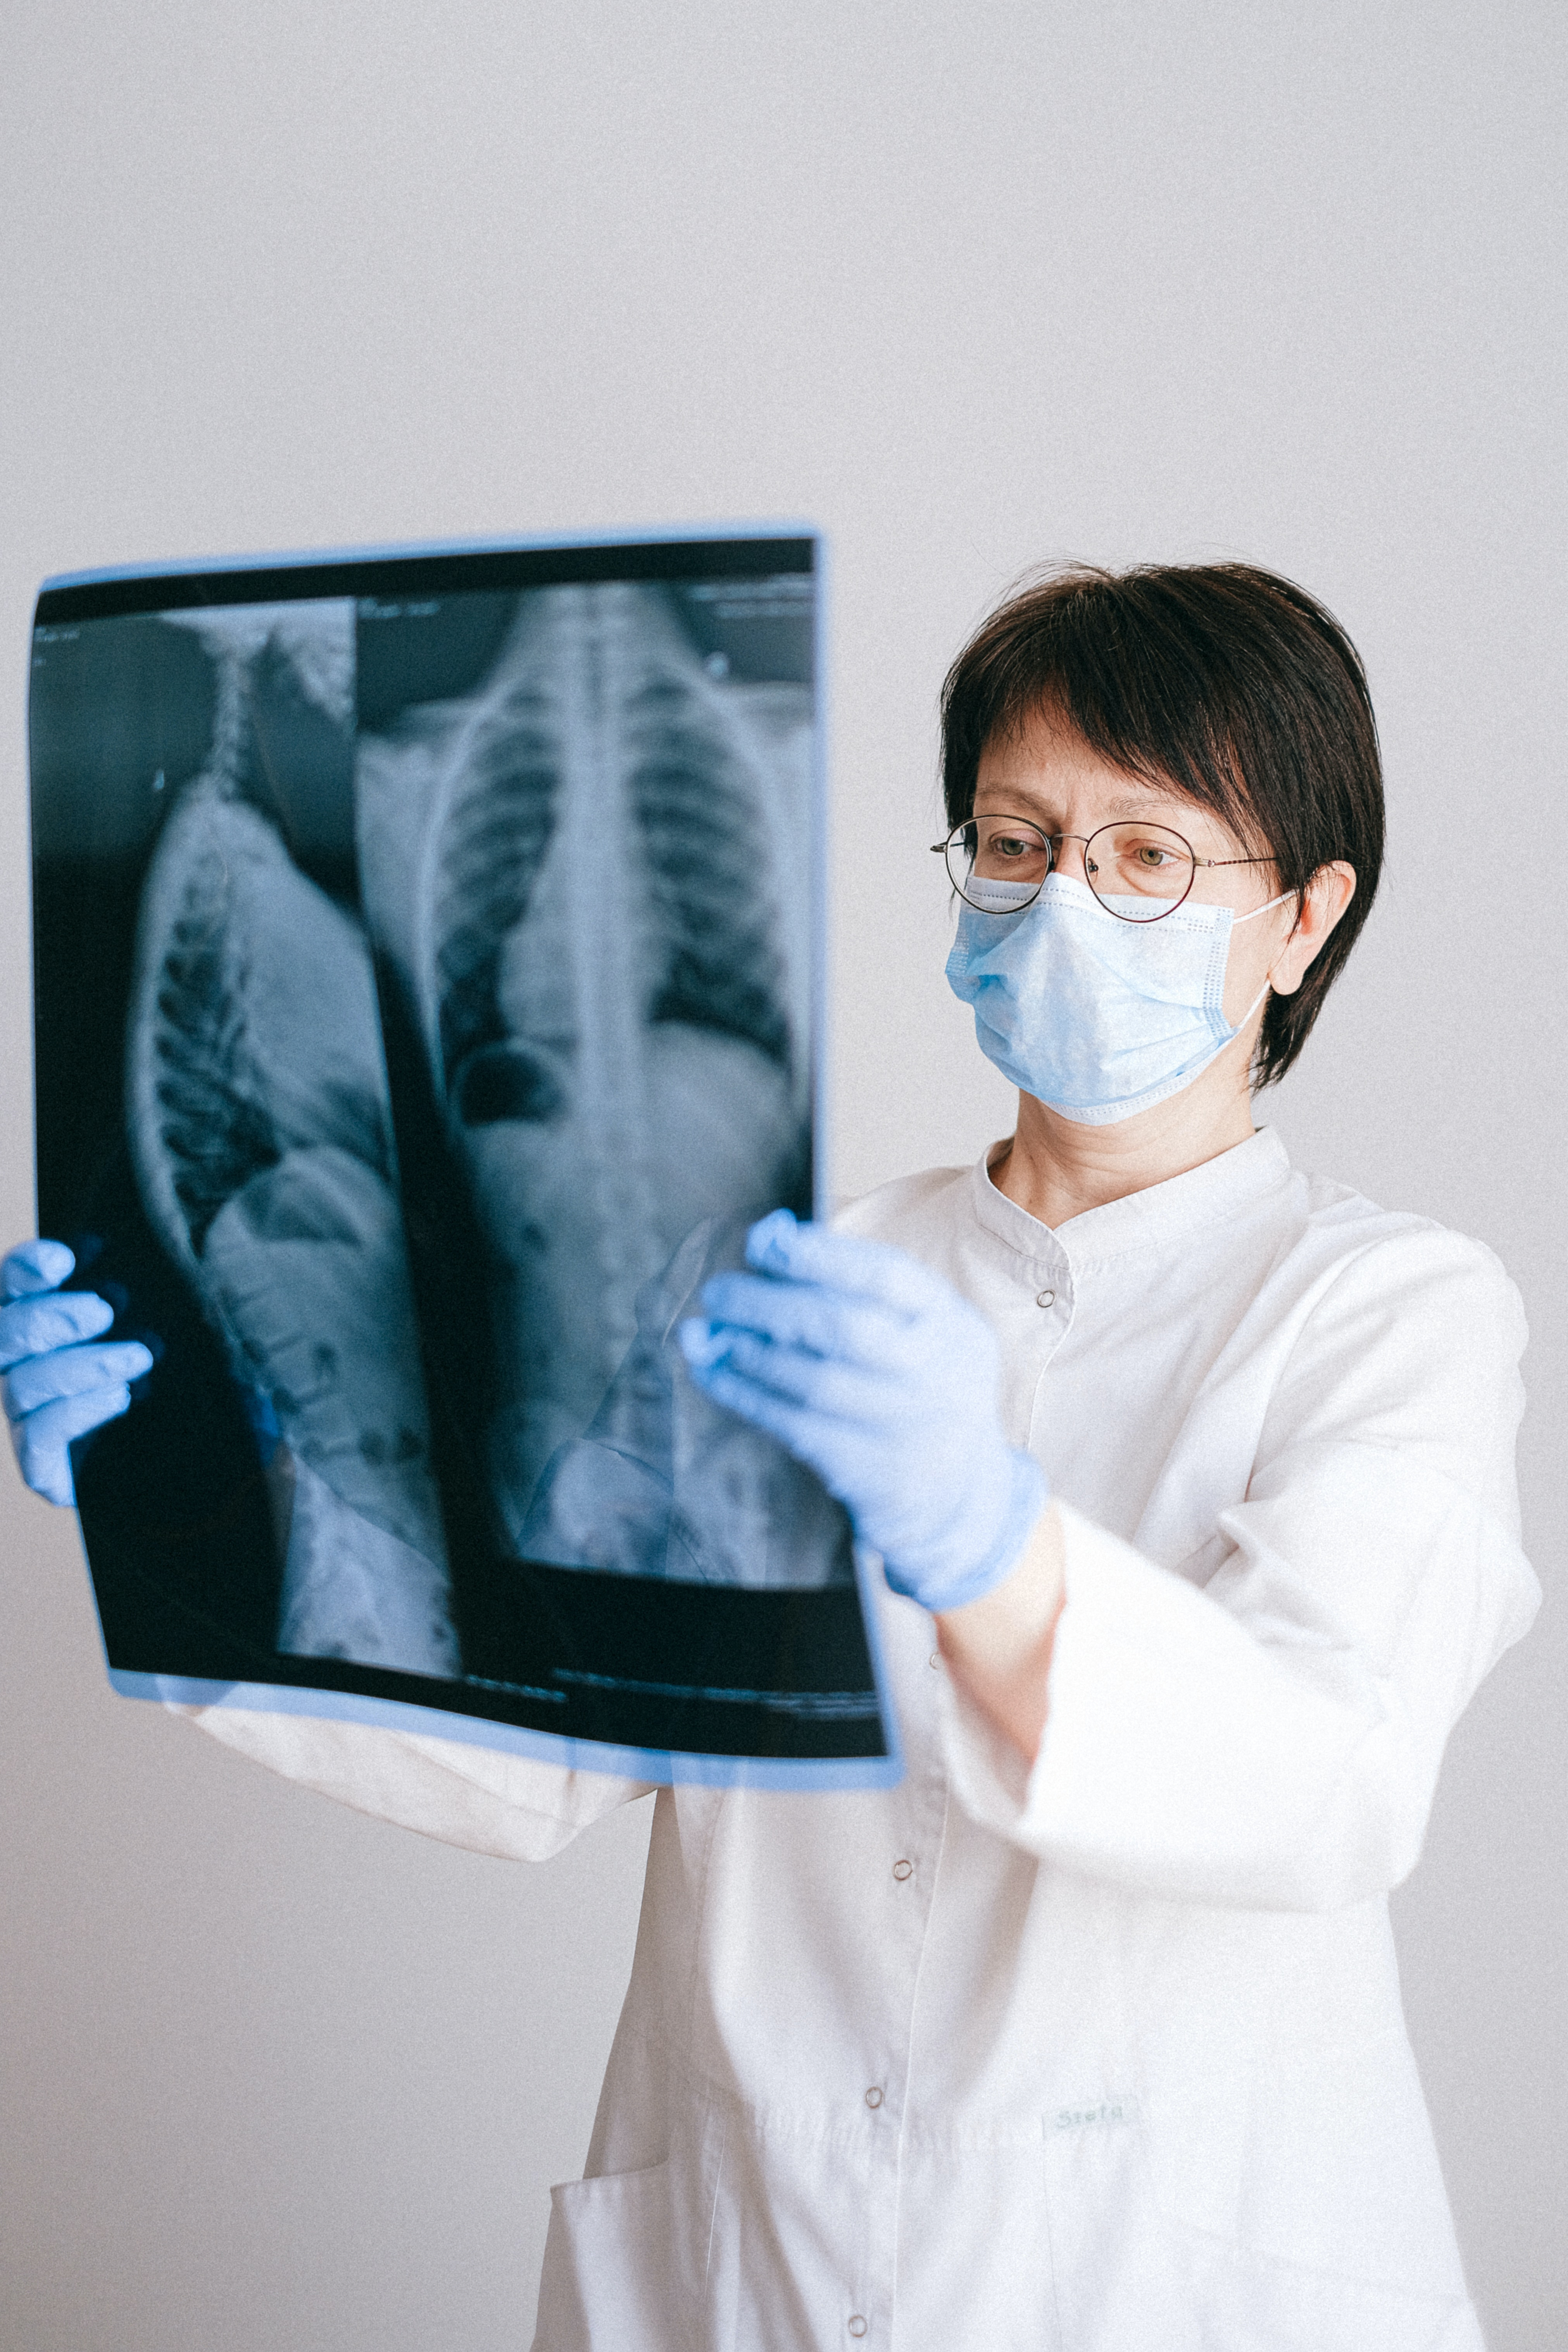 Stock image of woman viewing xray